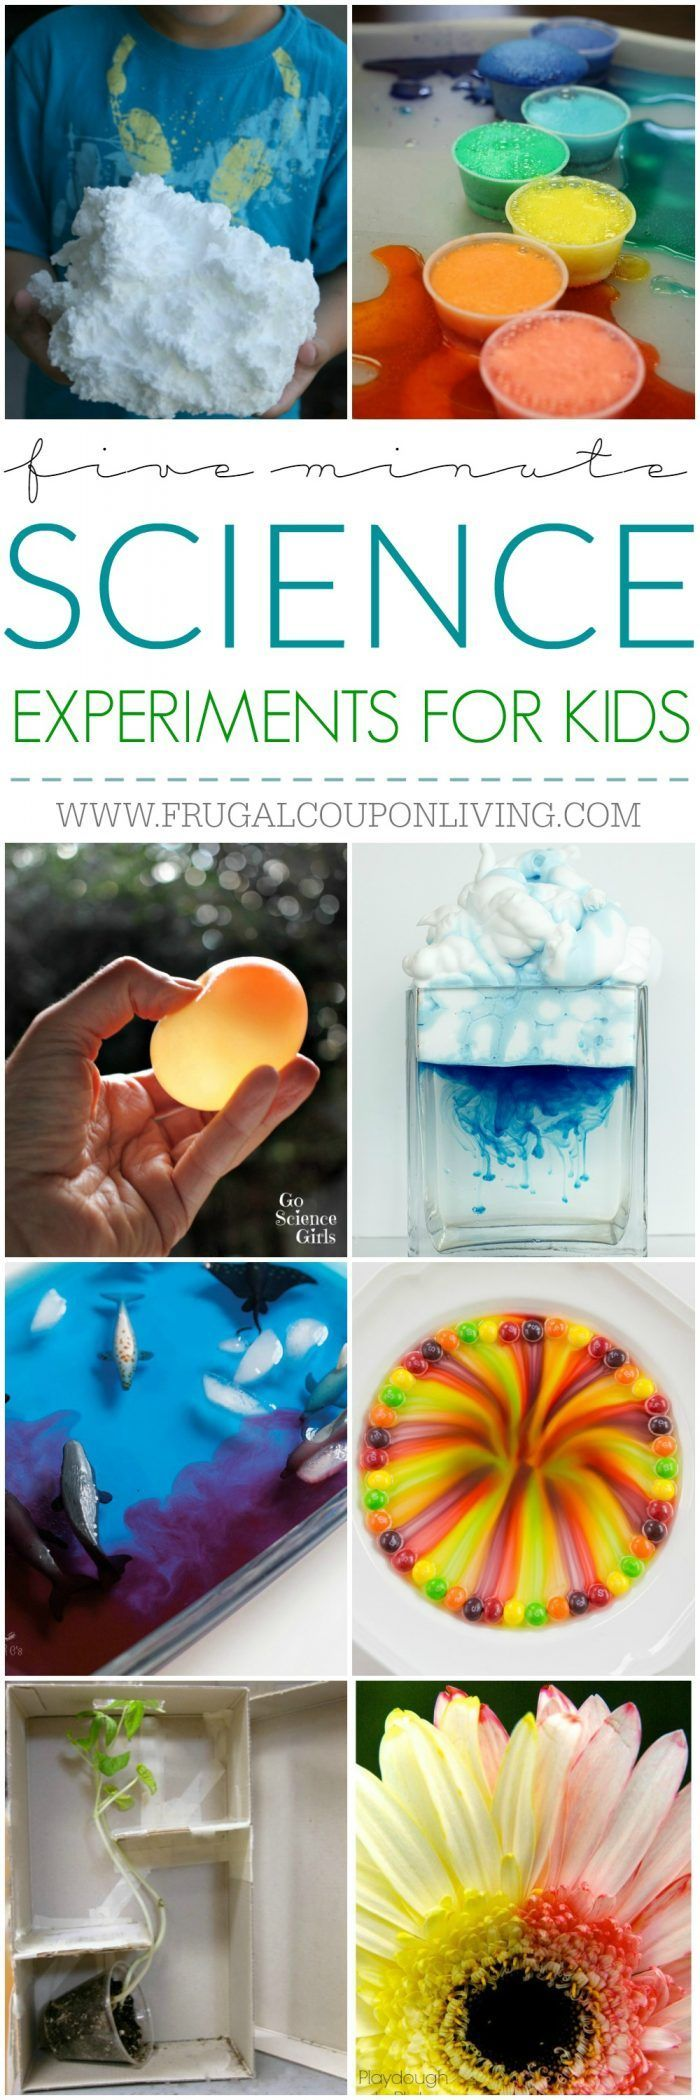 5 Minute Science Experiments for Kids and Busy Moms on Frugal Coupon Living. Geometric Bubbles, Glow in the Dark Volcanoes,